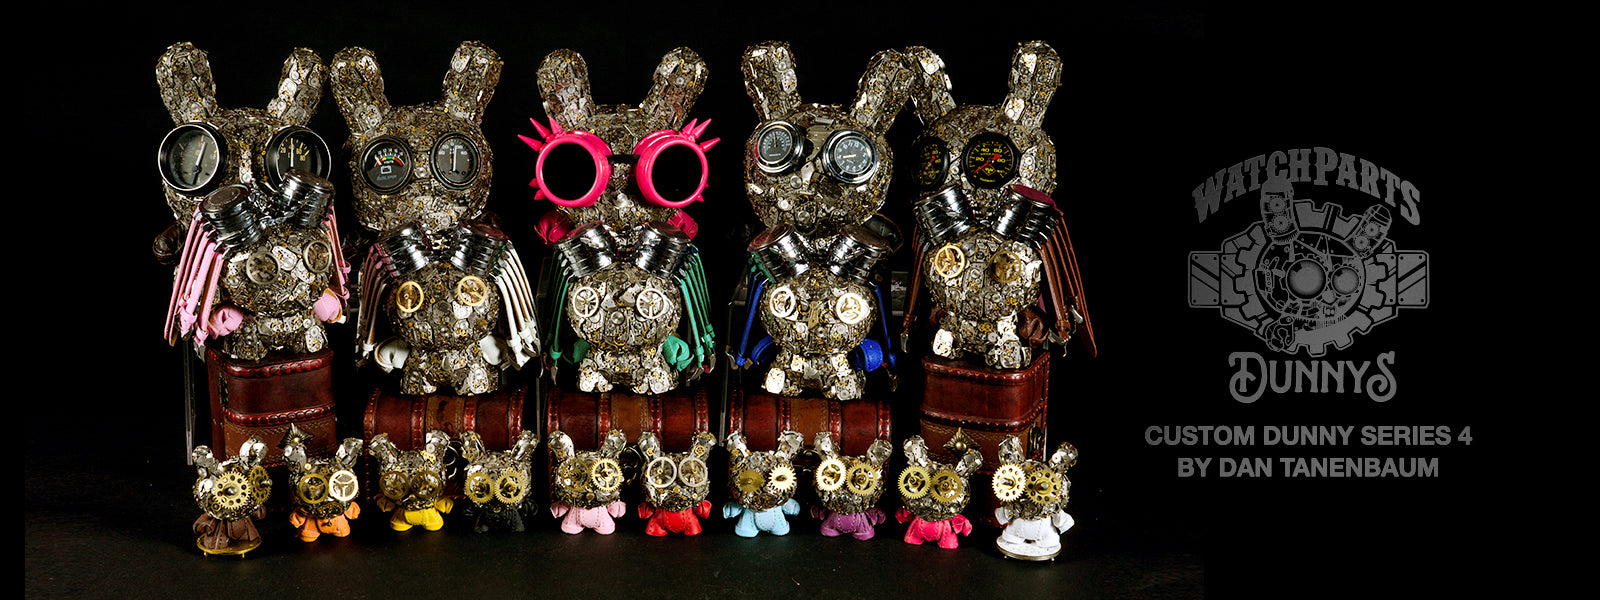 Kidrobot Watch Parts Dunnys Custom Dunny Series 4 by Dan Tanenbaum